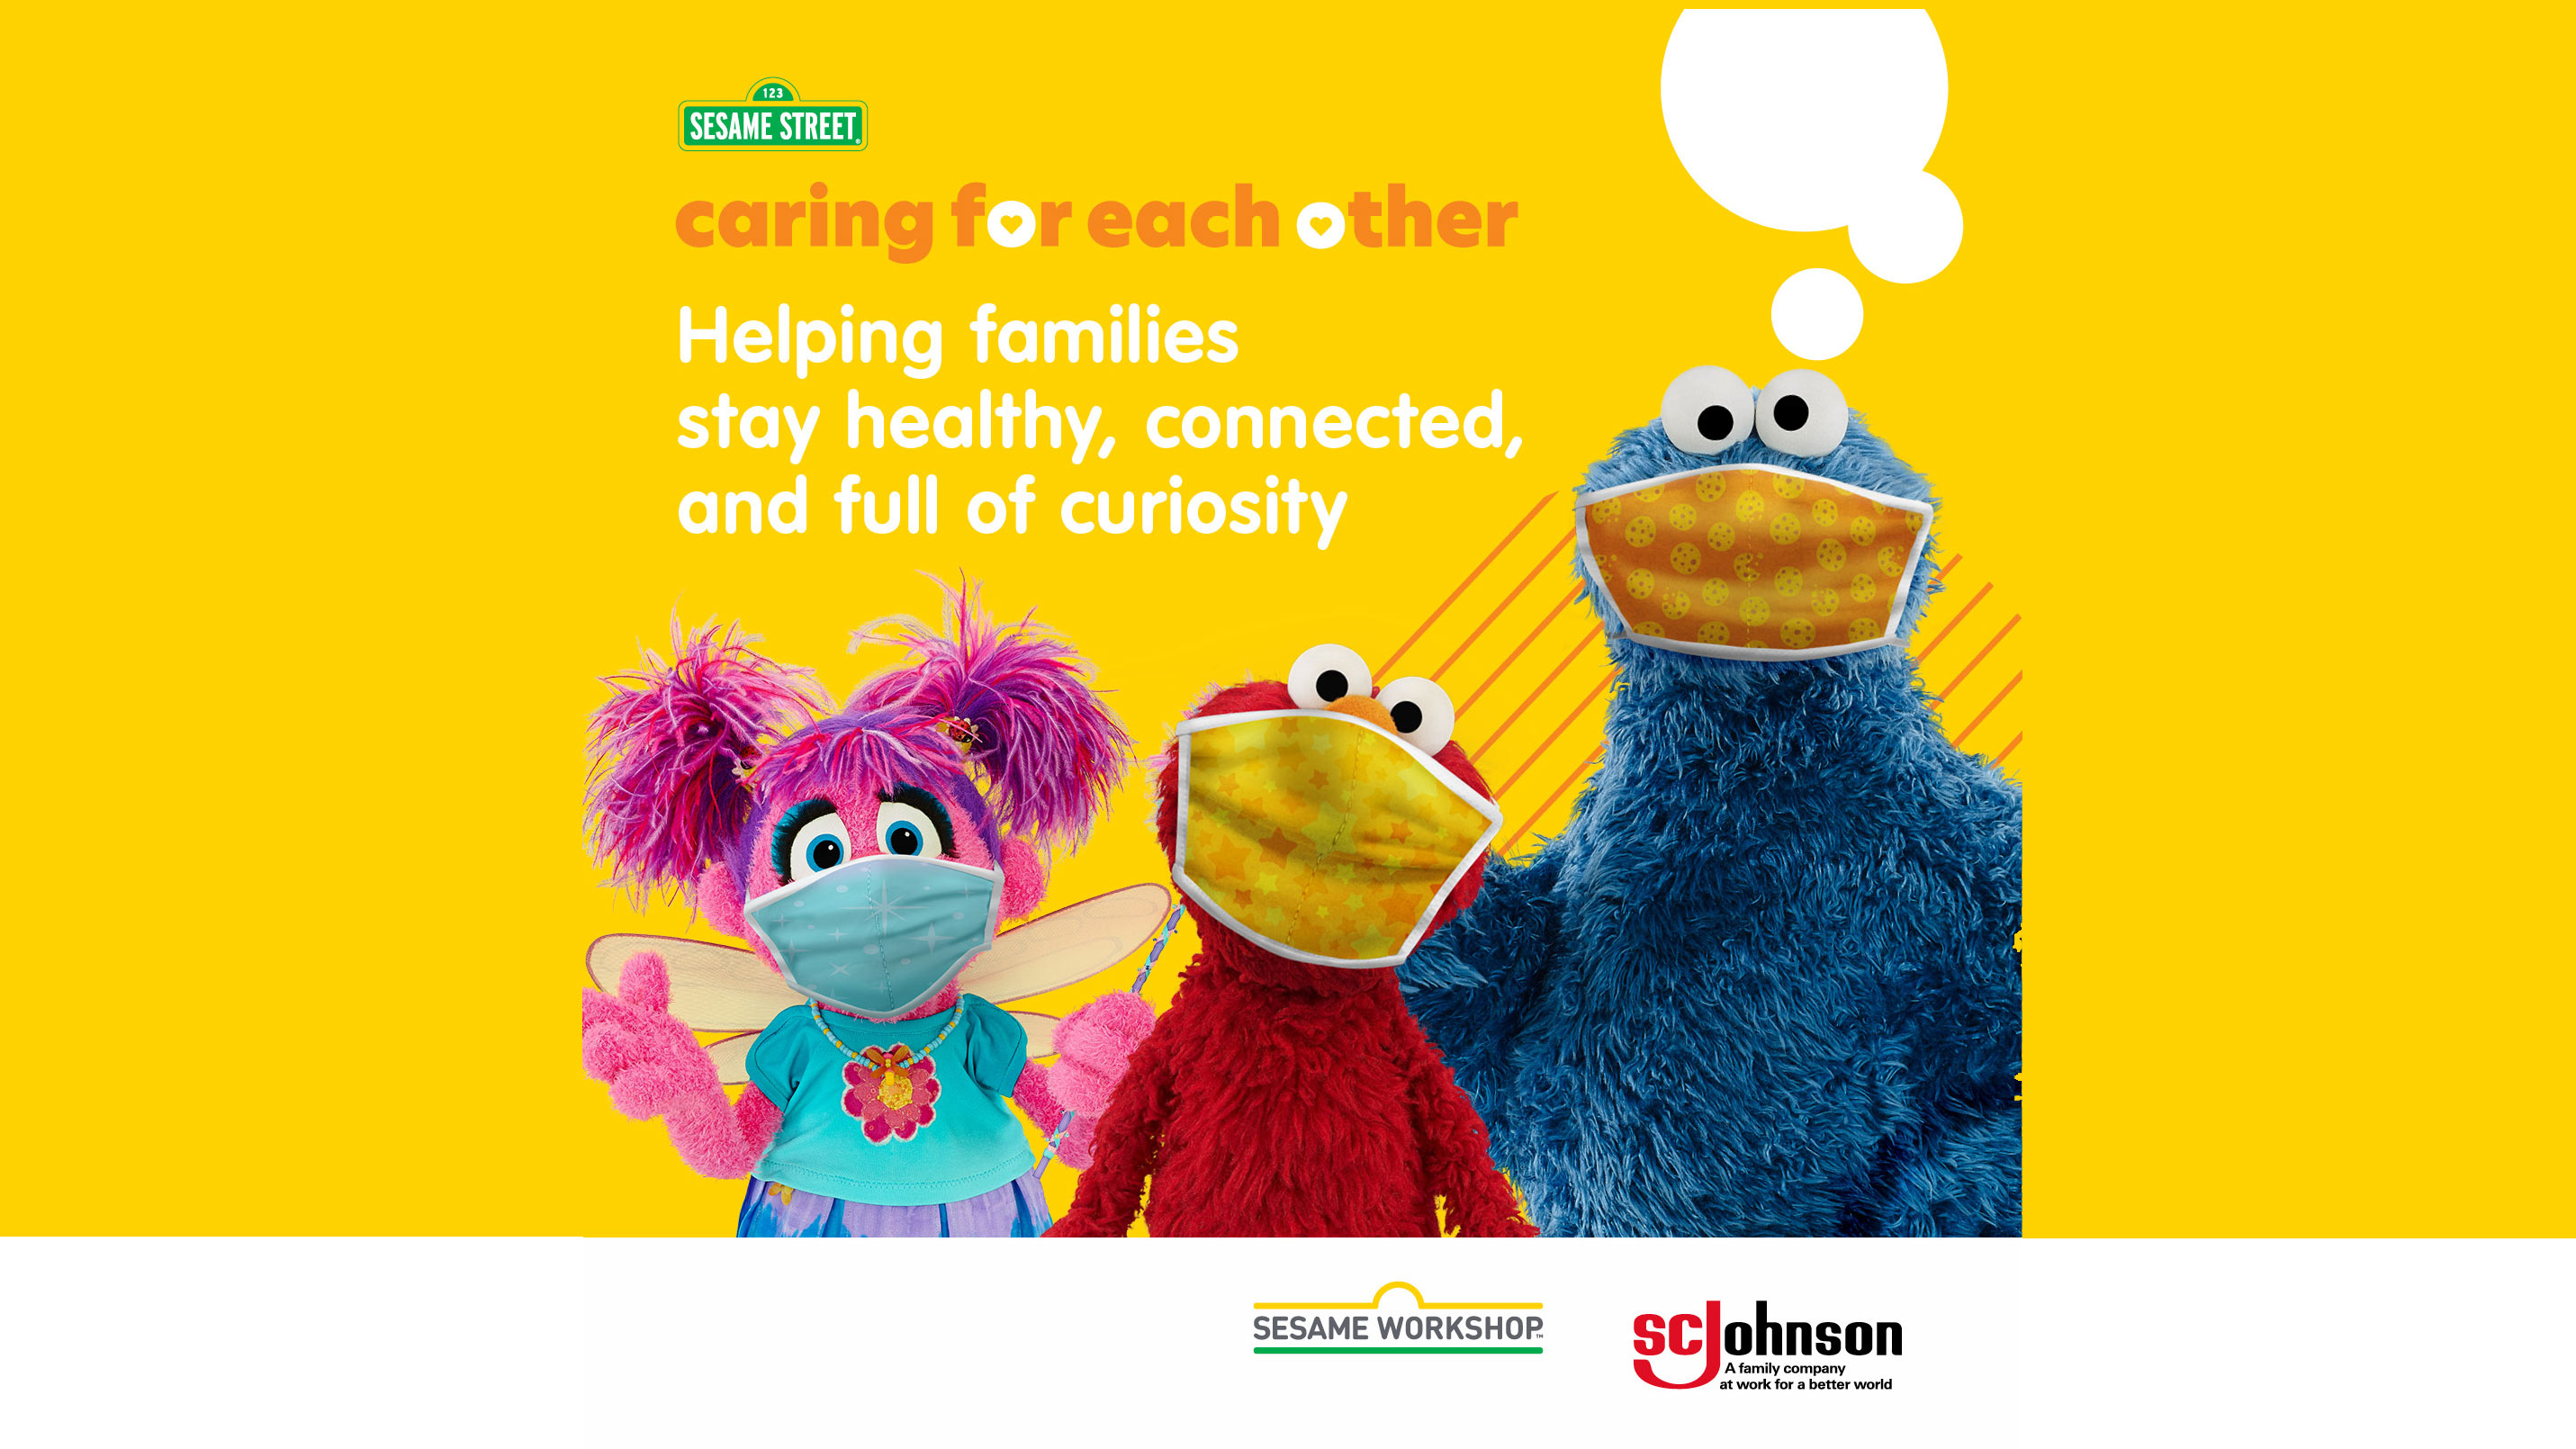 Sesame Workshop Caring For Each Other initiative